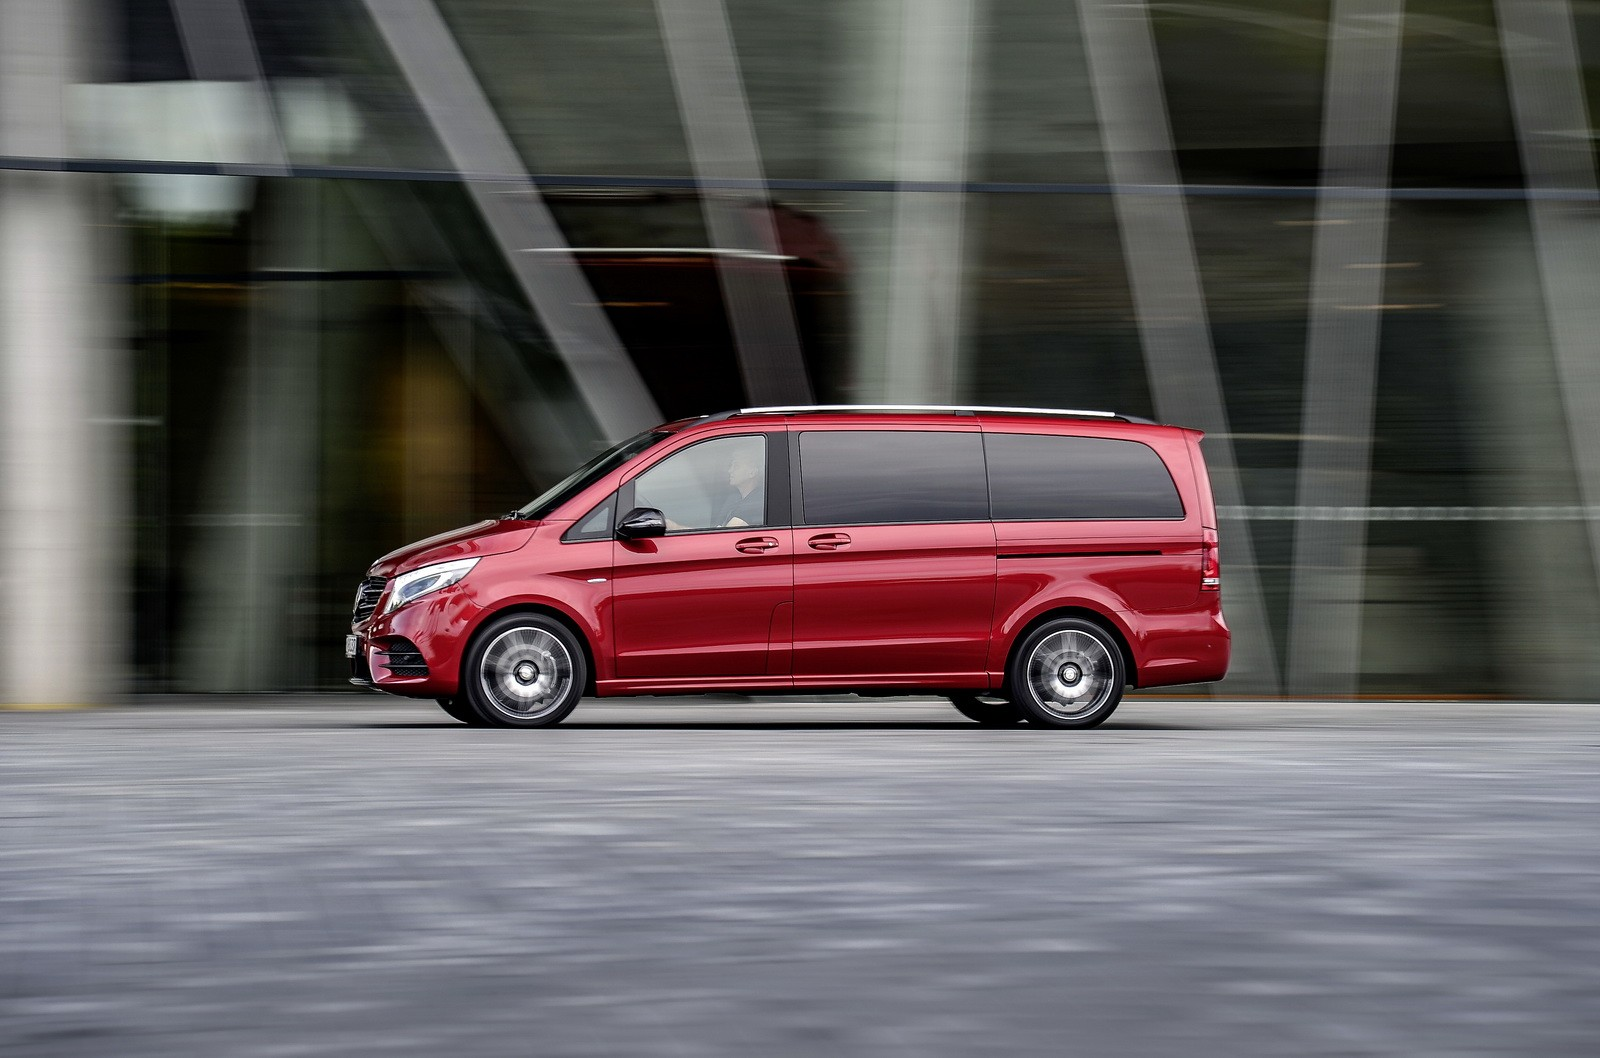 mercedes benz v class lineup adds rise and limited models autoevolution mercedes benz v class lineup adds rise